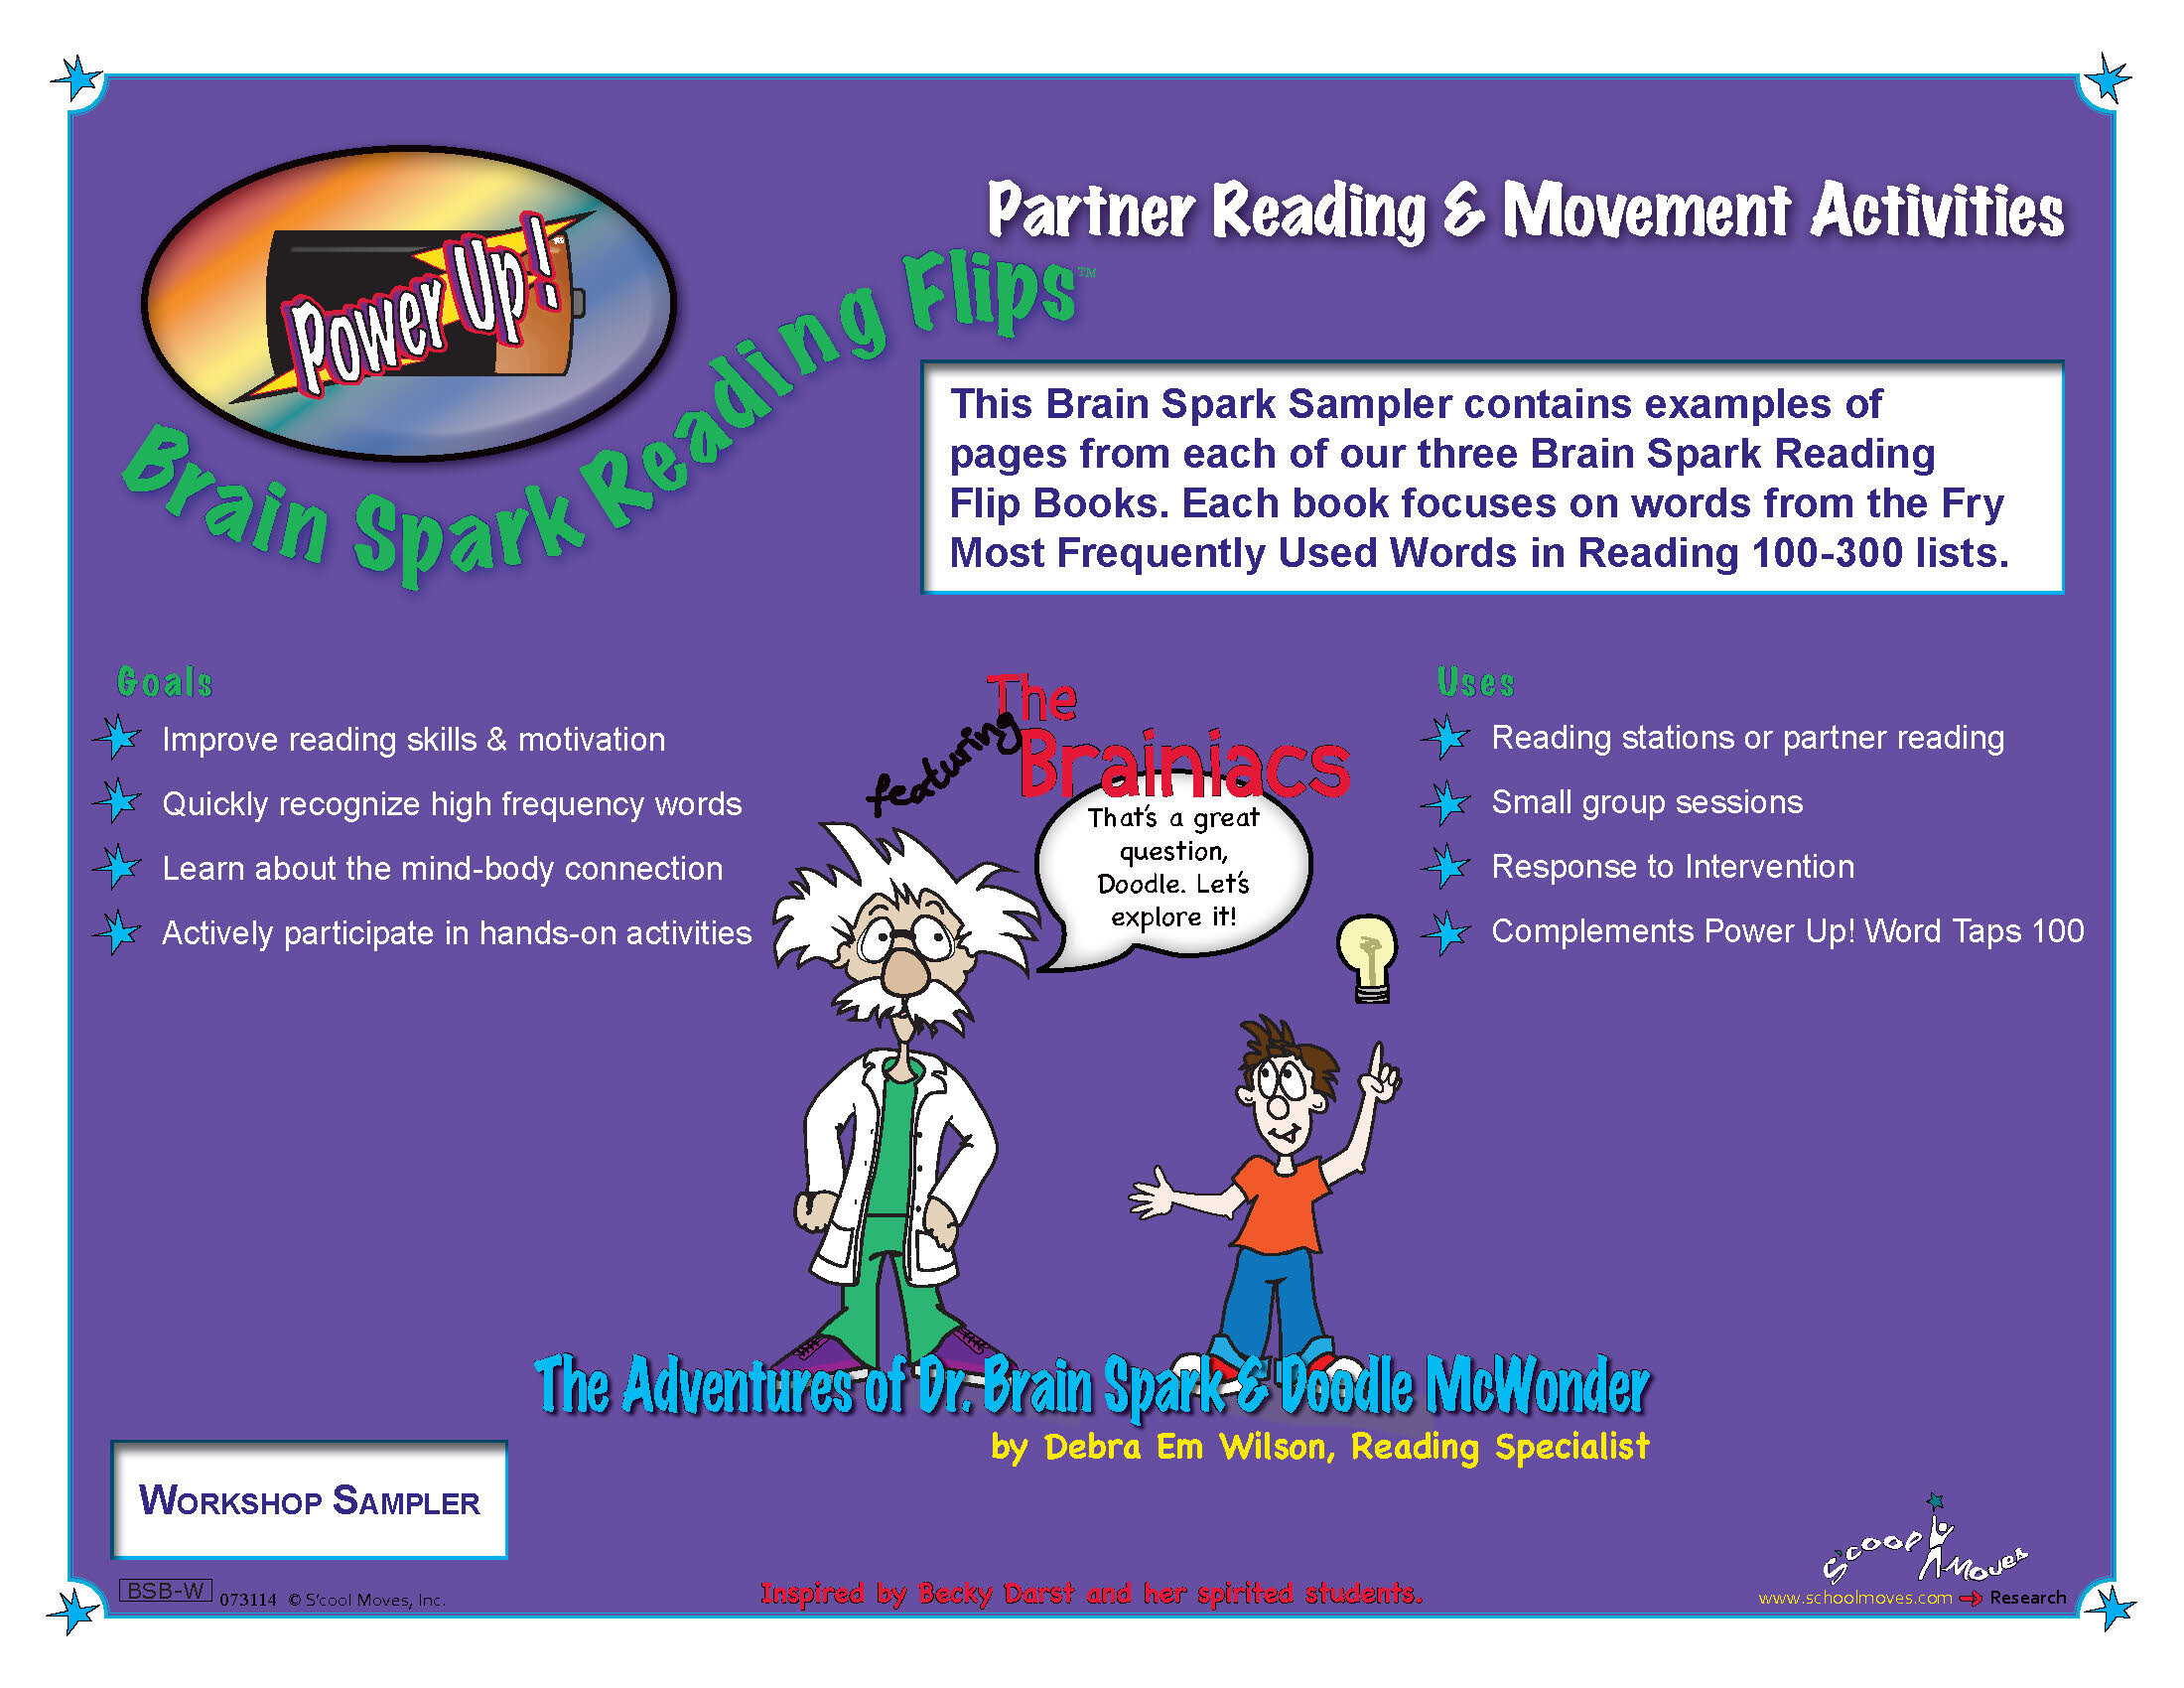 Reading Movement Cards 100 PDF, First Grade, 20 Different Instant Online  Activities, 12.2 MB File — S'cool Moves, Inc.